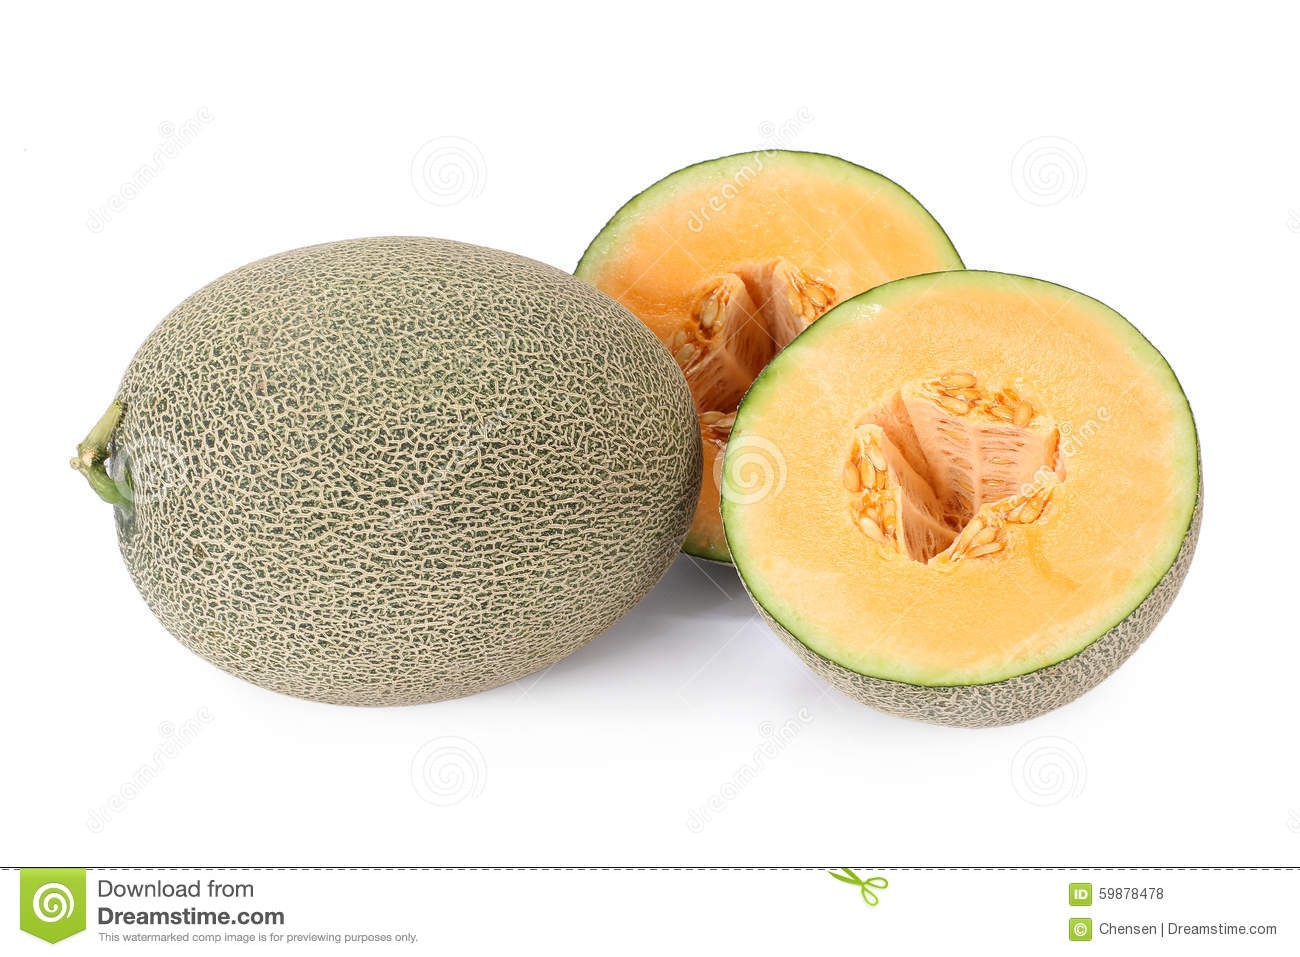 hami men This is a very special variety melon in which the seed originated in the xingjiang area of china oblong in shape with yellow skin and green streaks throughout, the hami melon has a juicy orange flesh.